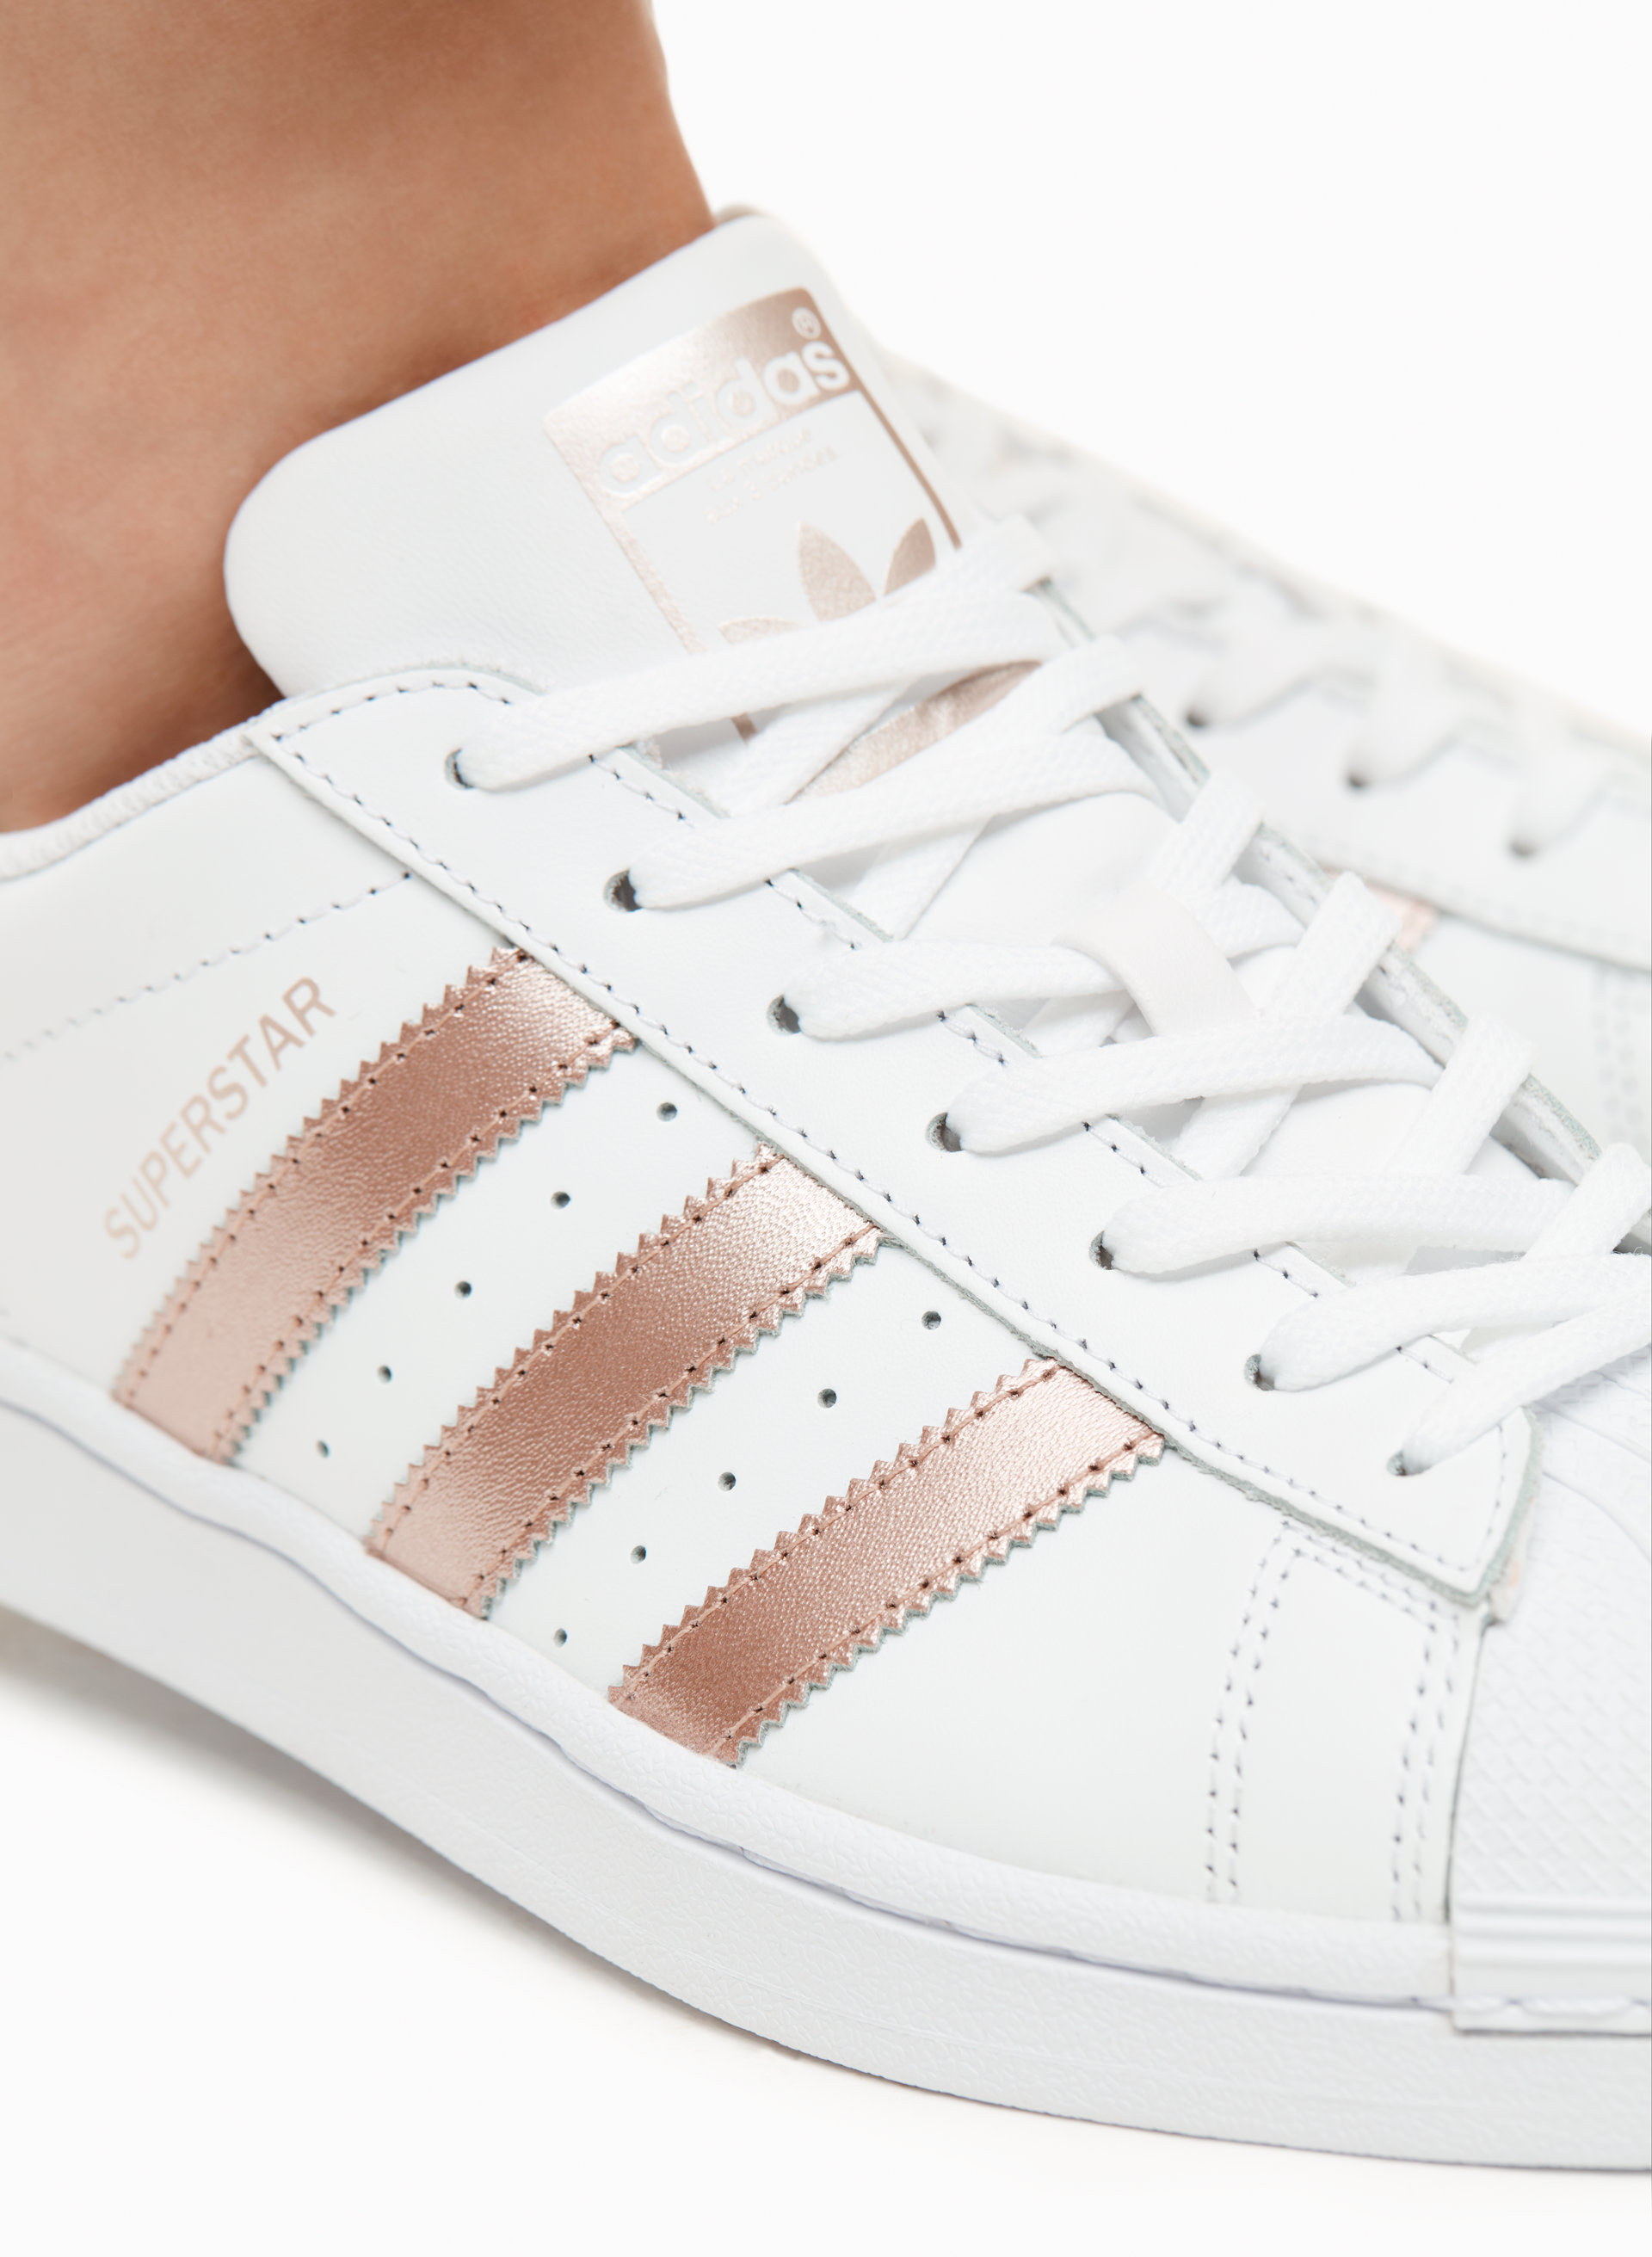 Jeremy Scott Takes On the Cheap Adidas Superstar 80's